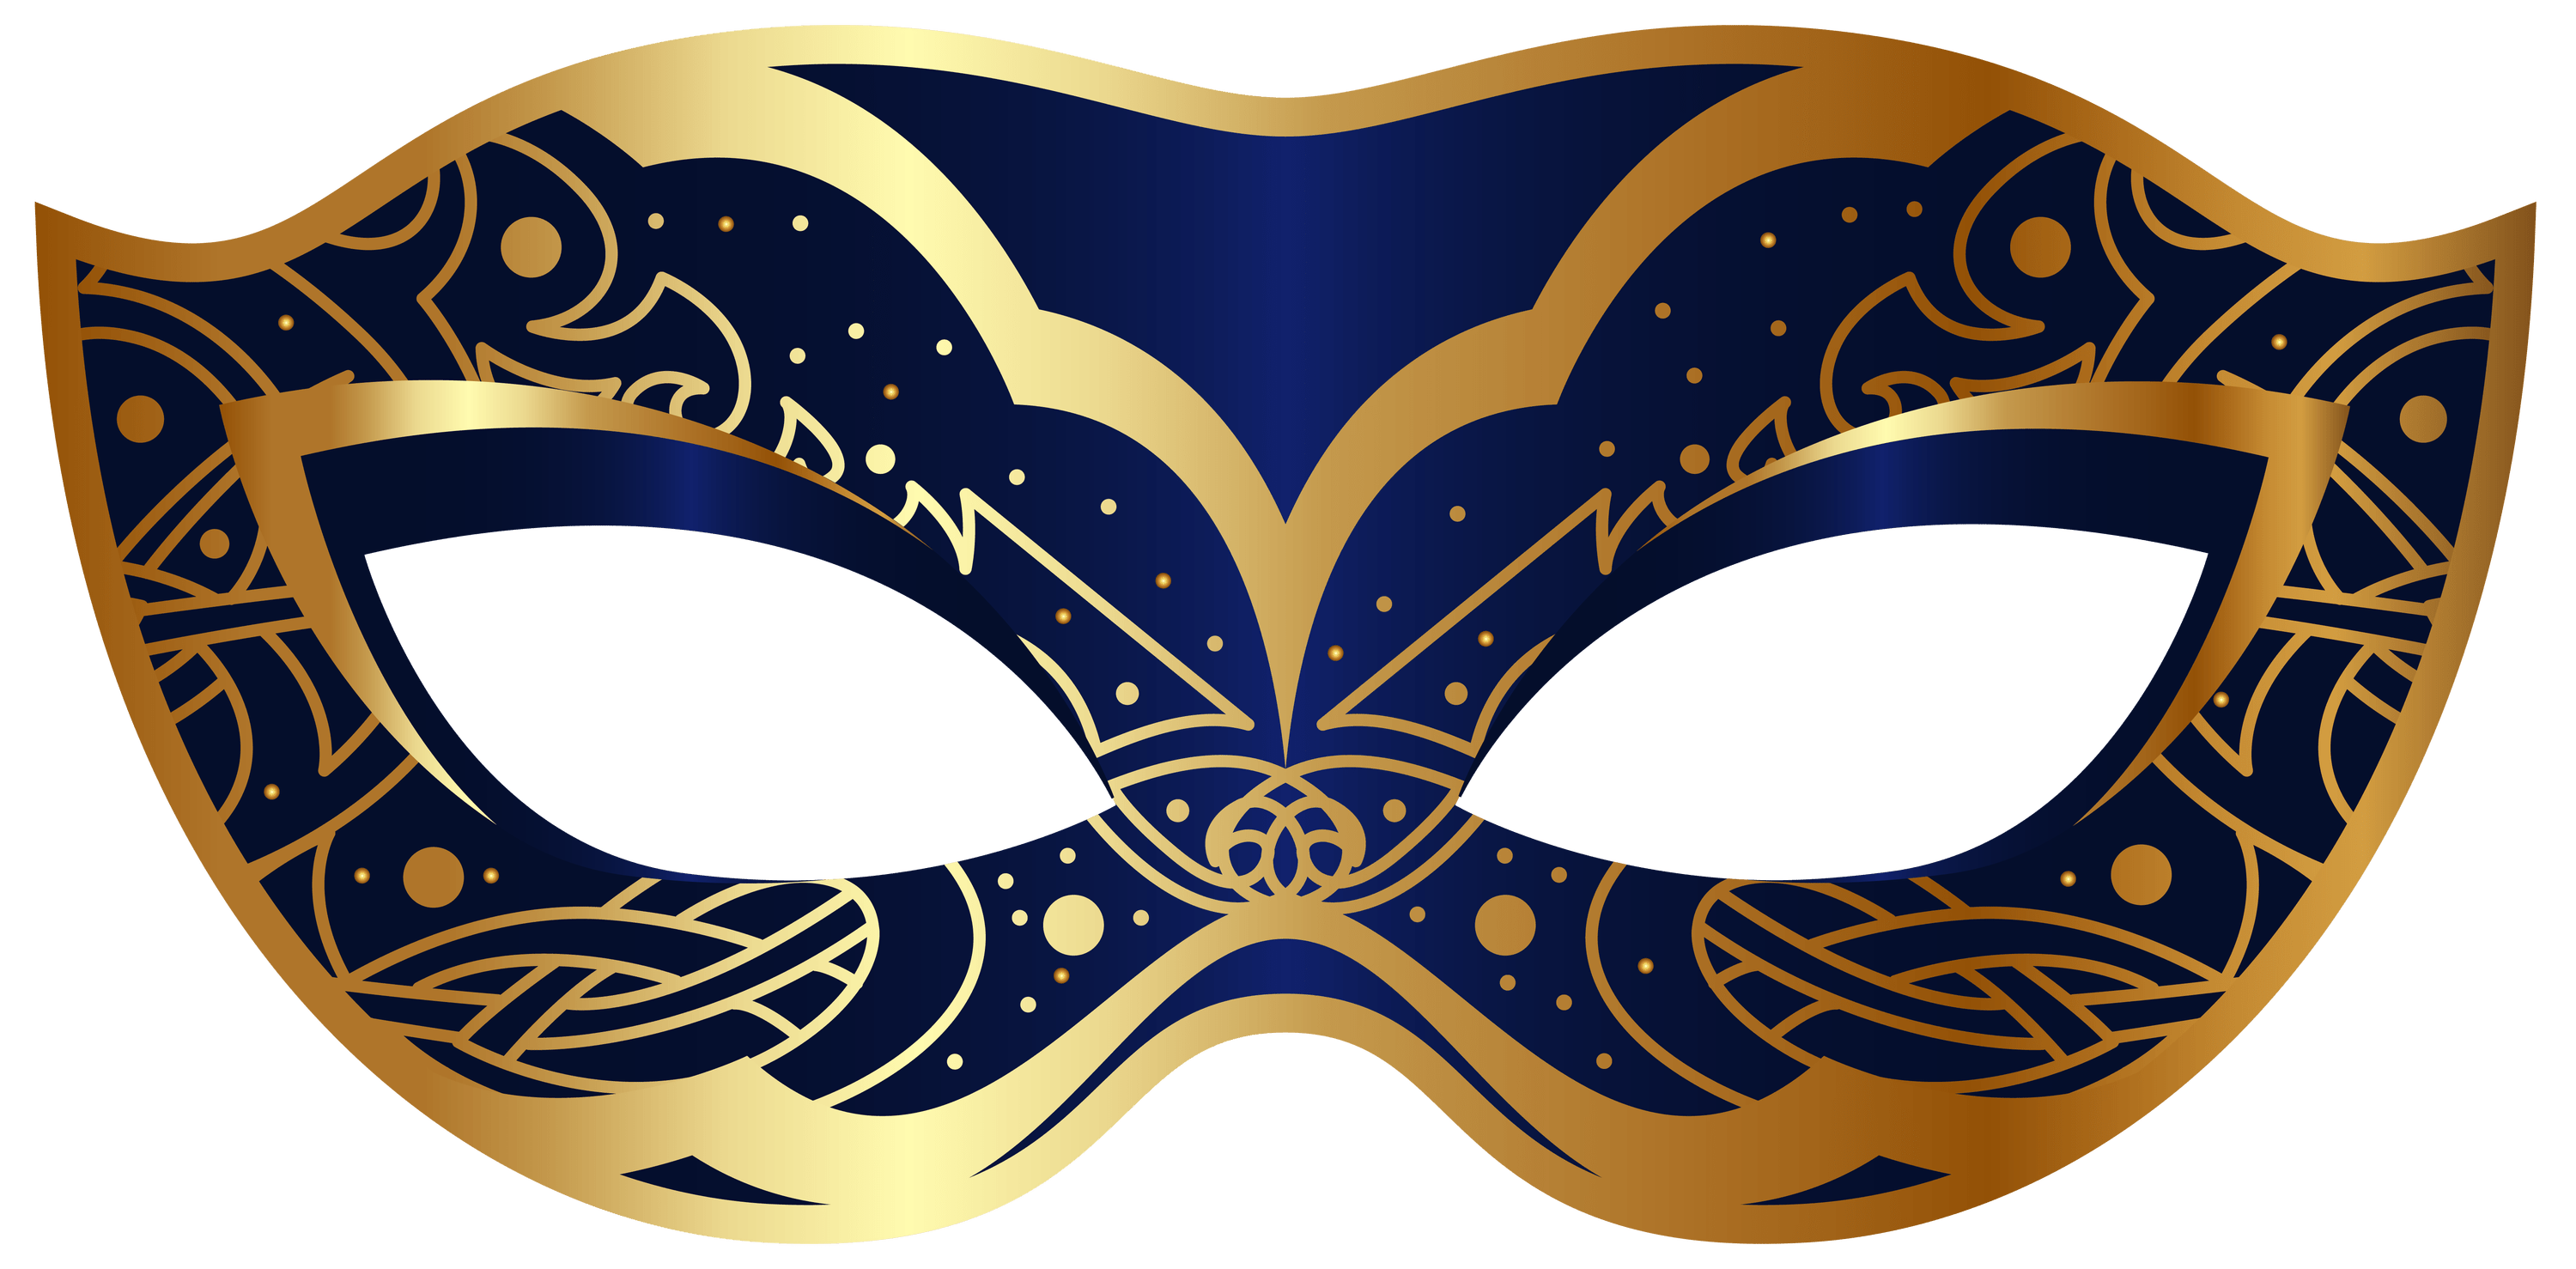 HD wallpapers masquerade mask template man